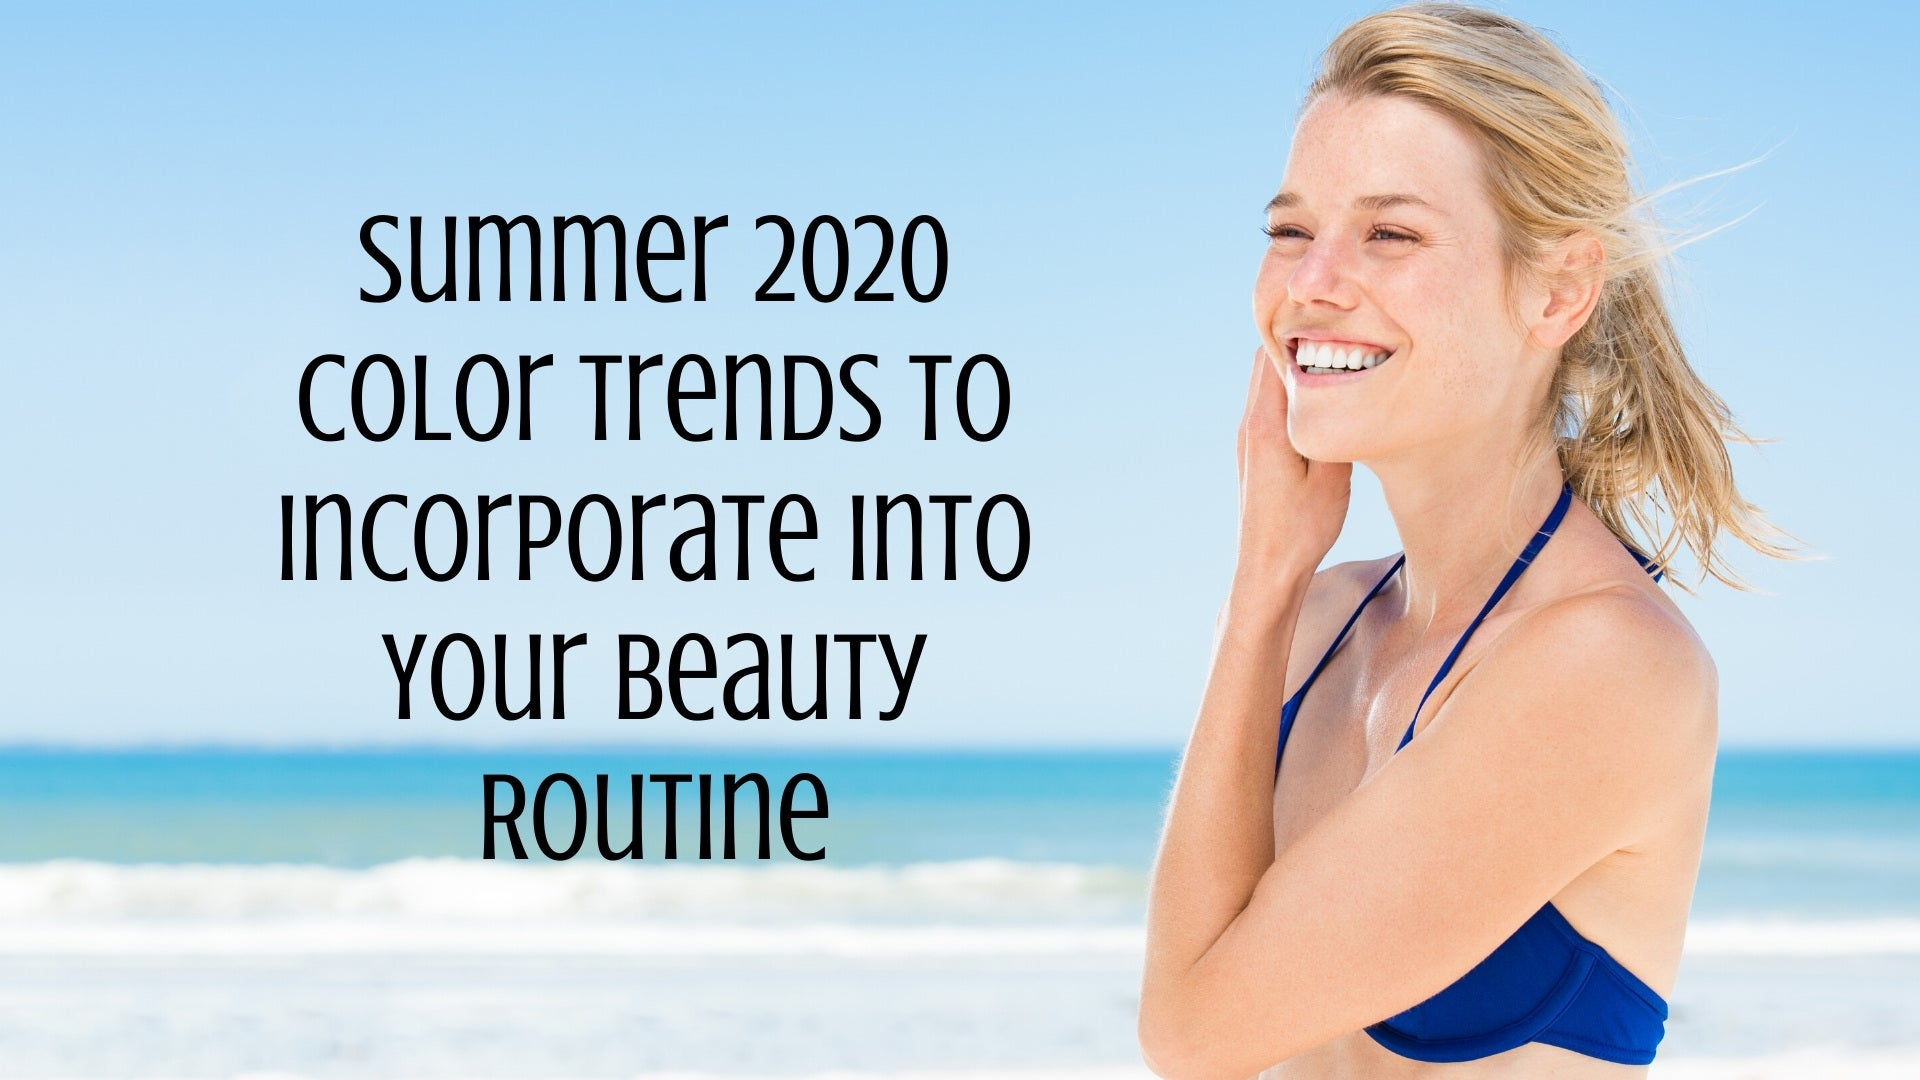 Summer 2020 Color Trends to Incorporate Into Your Beauty Routine